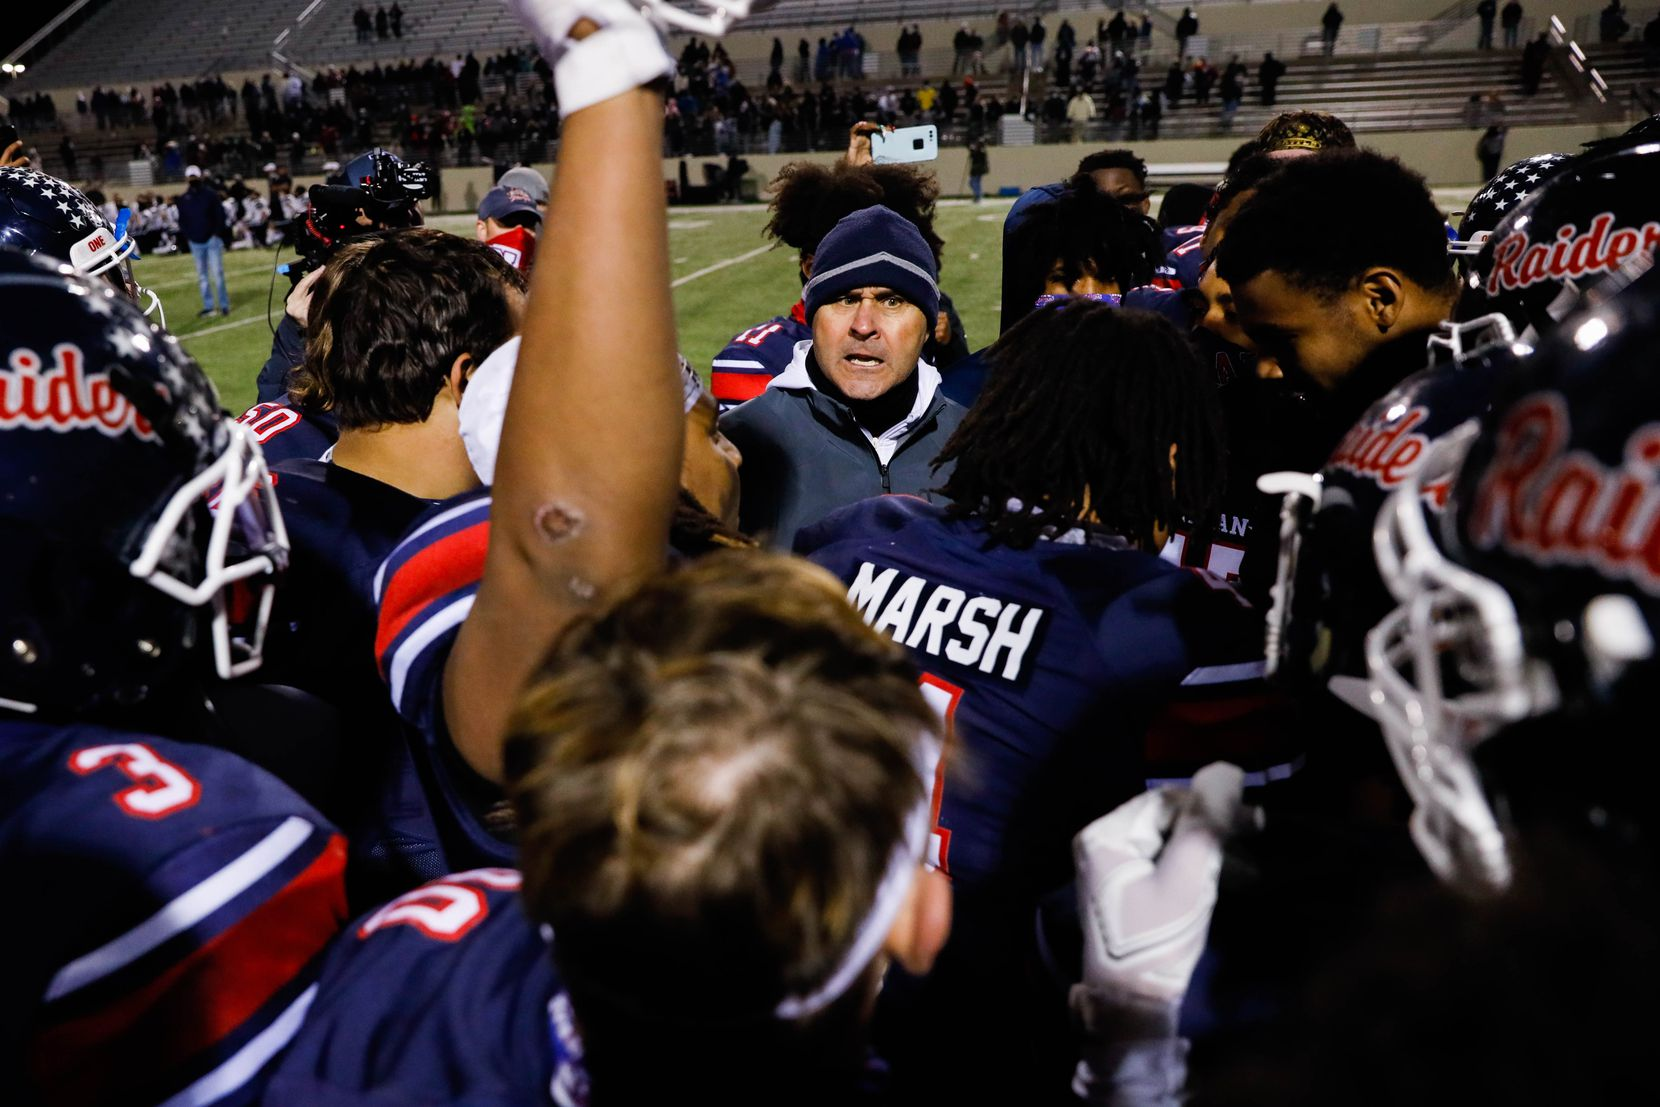 Denton Ryan football coach Dave Henigan celebrates with his players after winning the District 5-5A Division I title against Frisco Lone Star at the C.H. Collins Complex in Denton on Thursday, Dec. 4, 2020. Denton Ryan won, 35-21. (Juan Figueroa/ The Dallas Morning News)